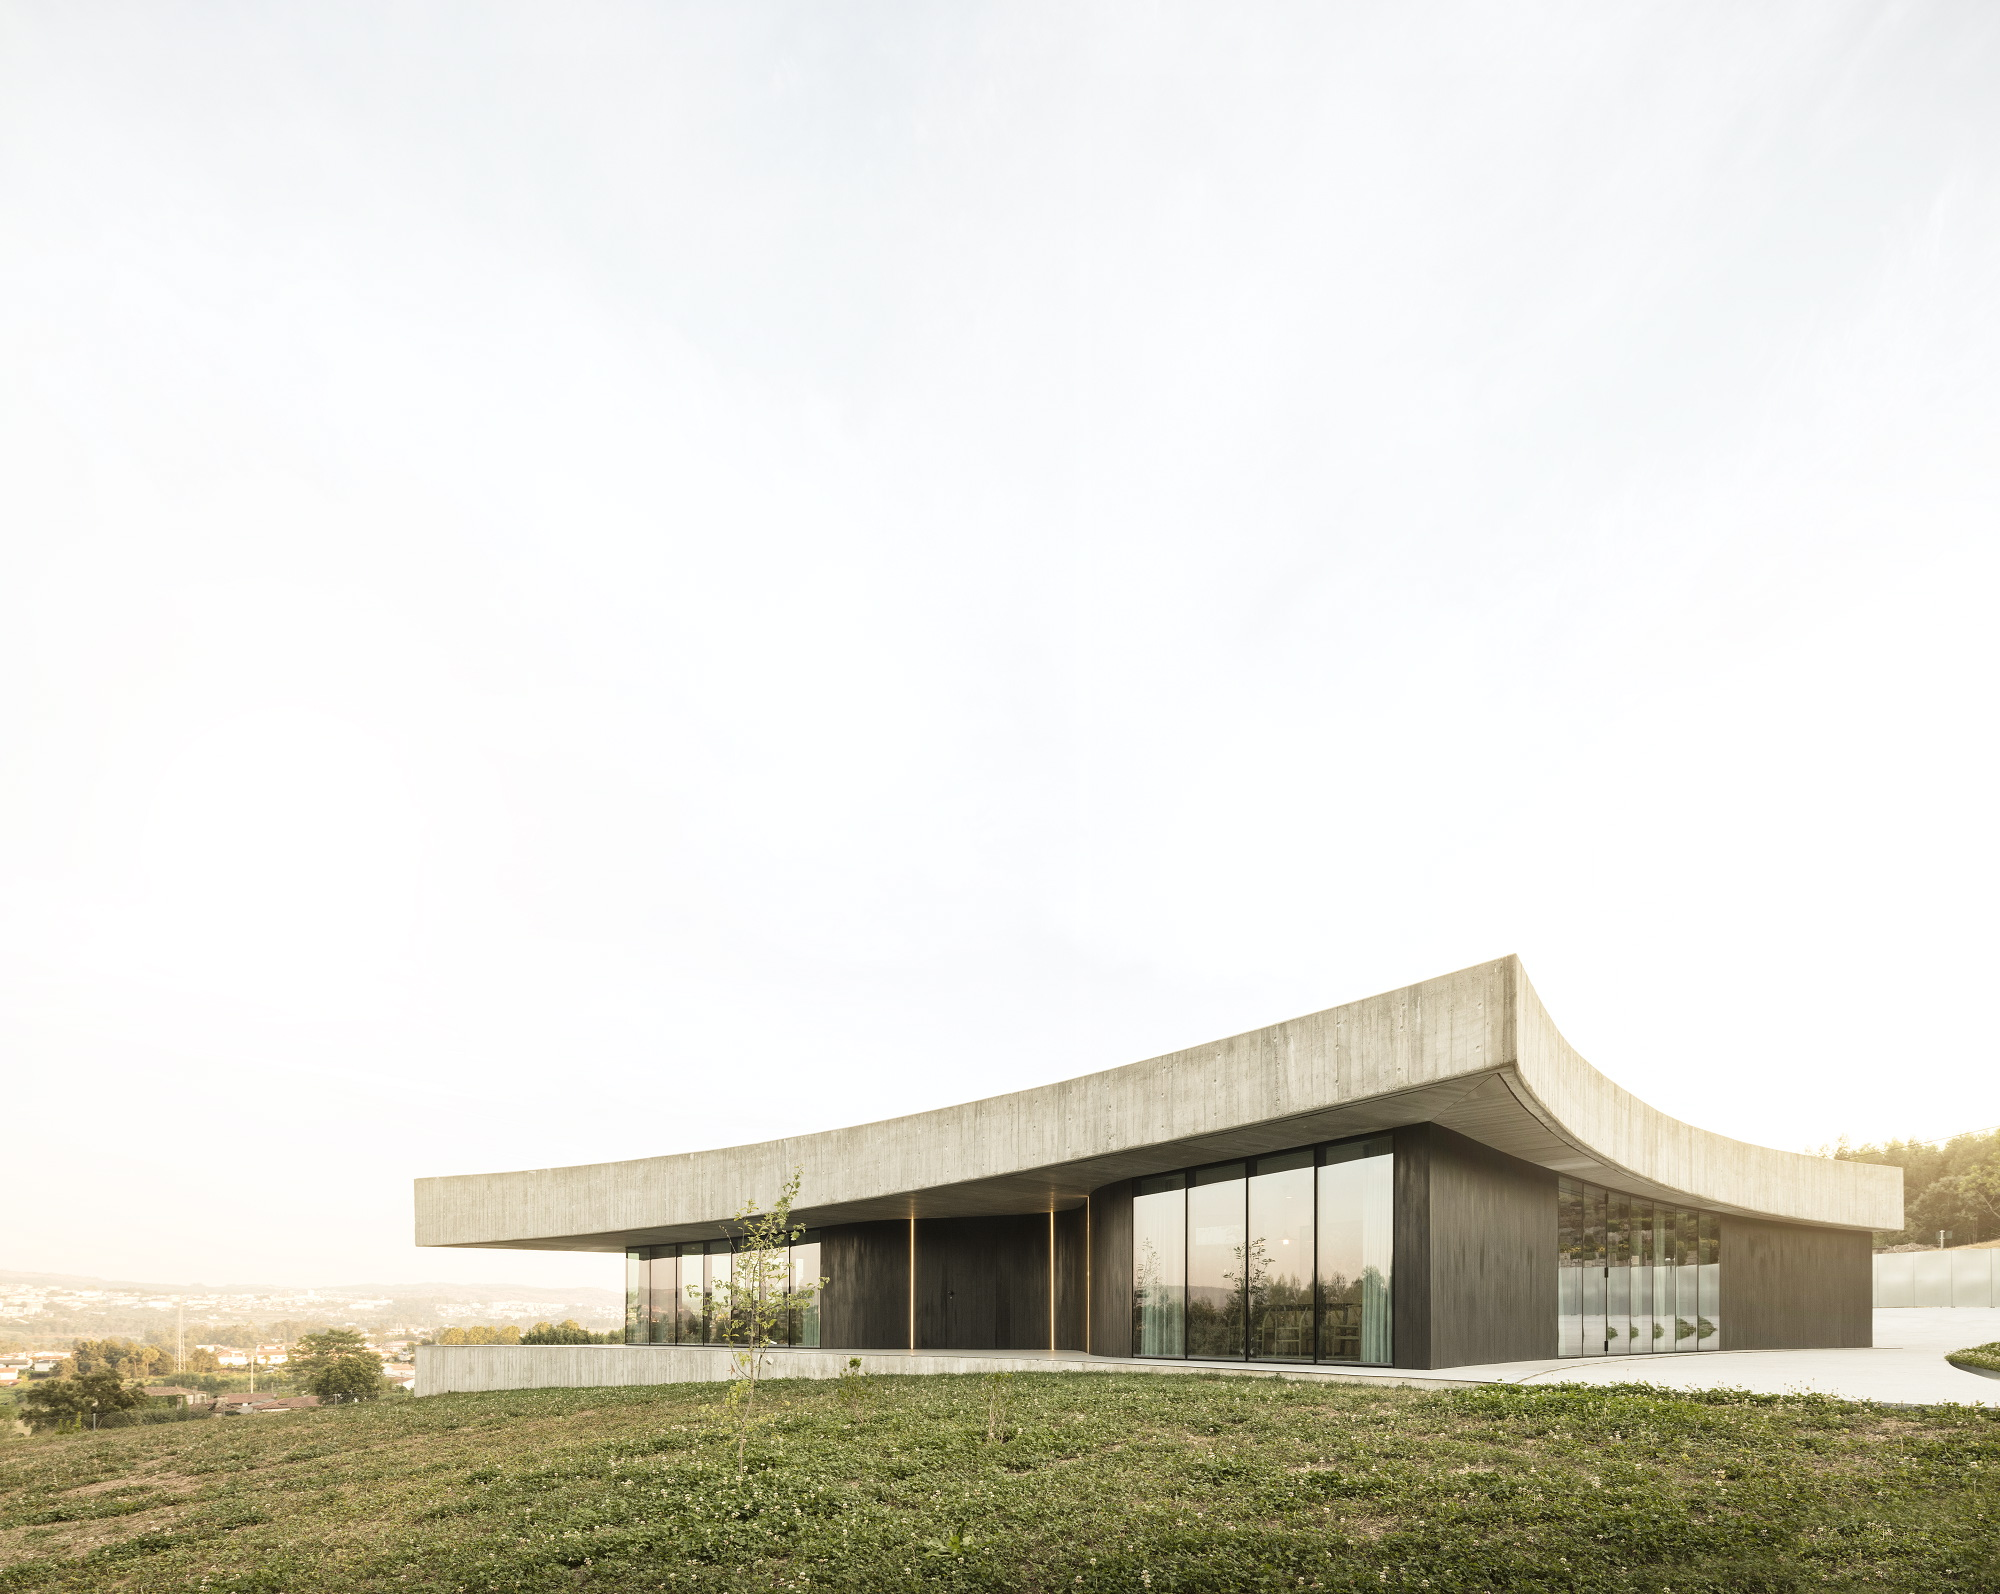 architecture_casacabodevila_spaceworkers02